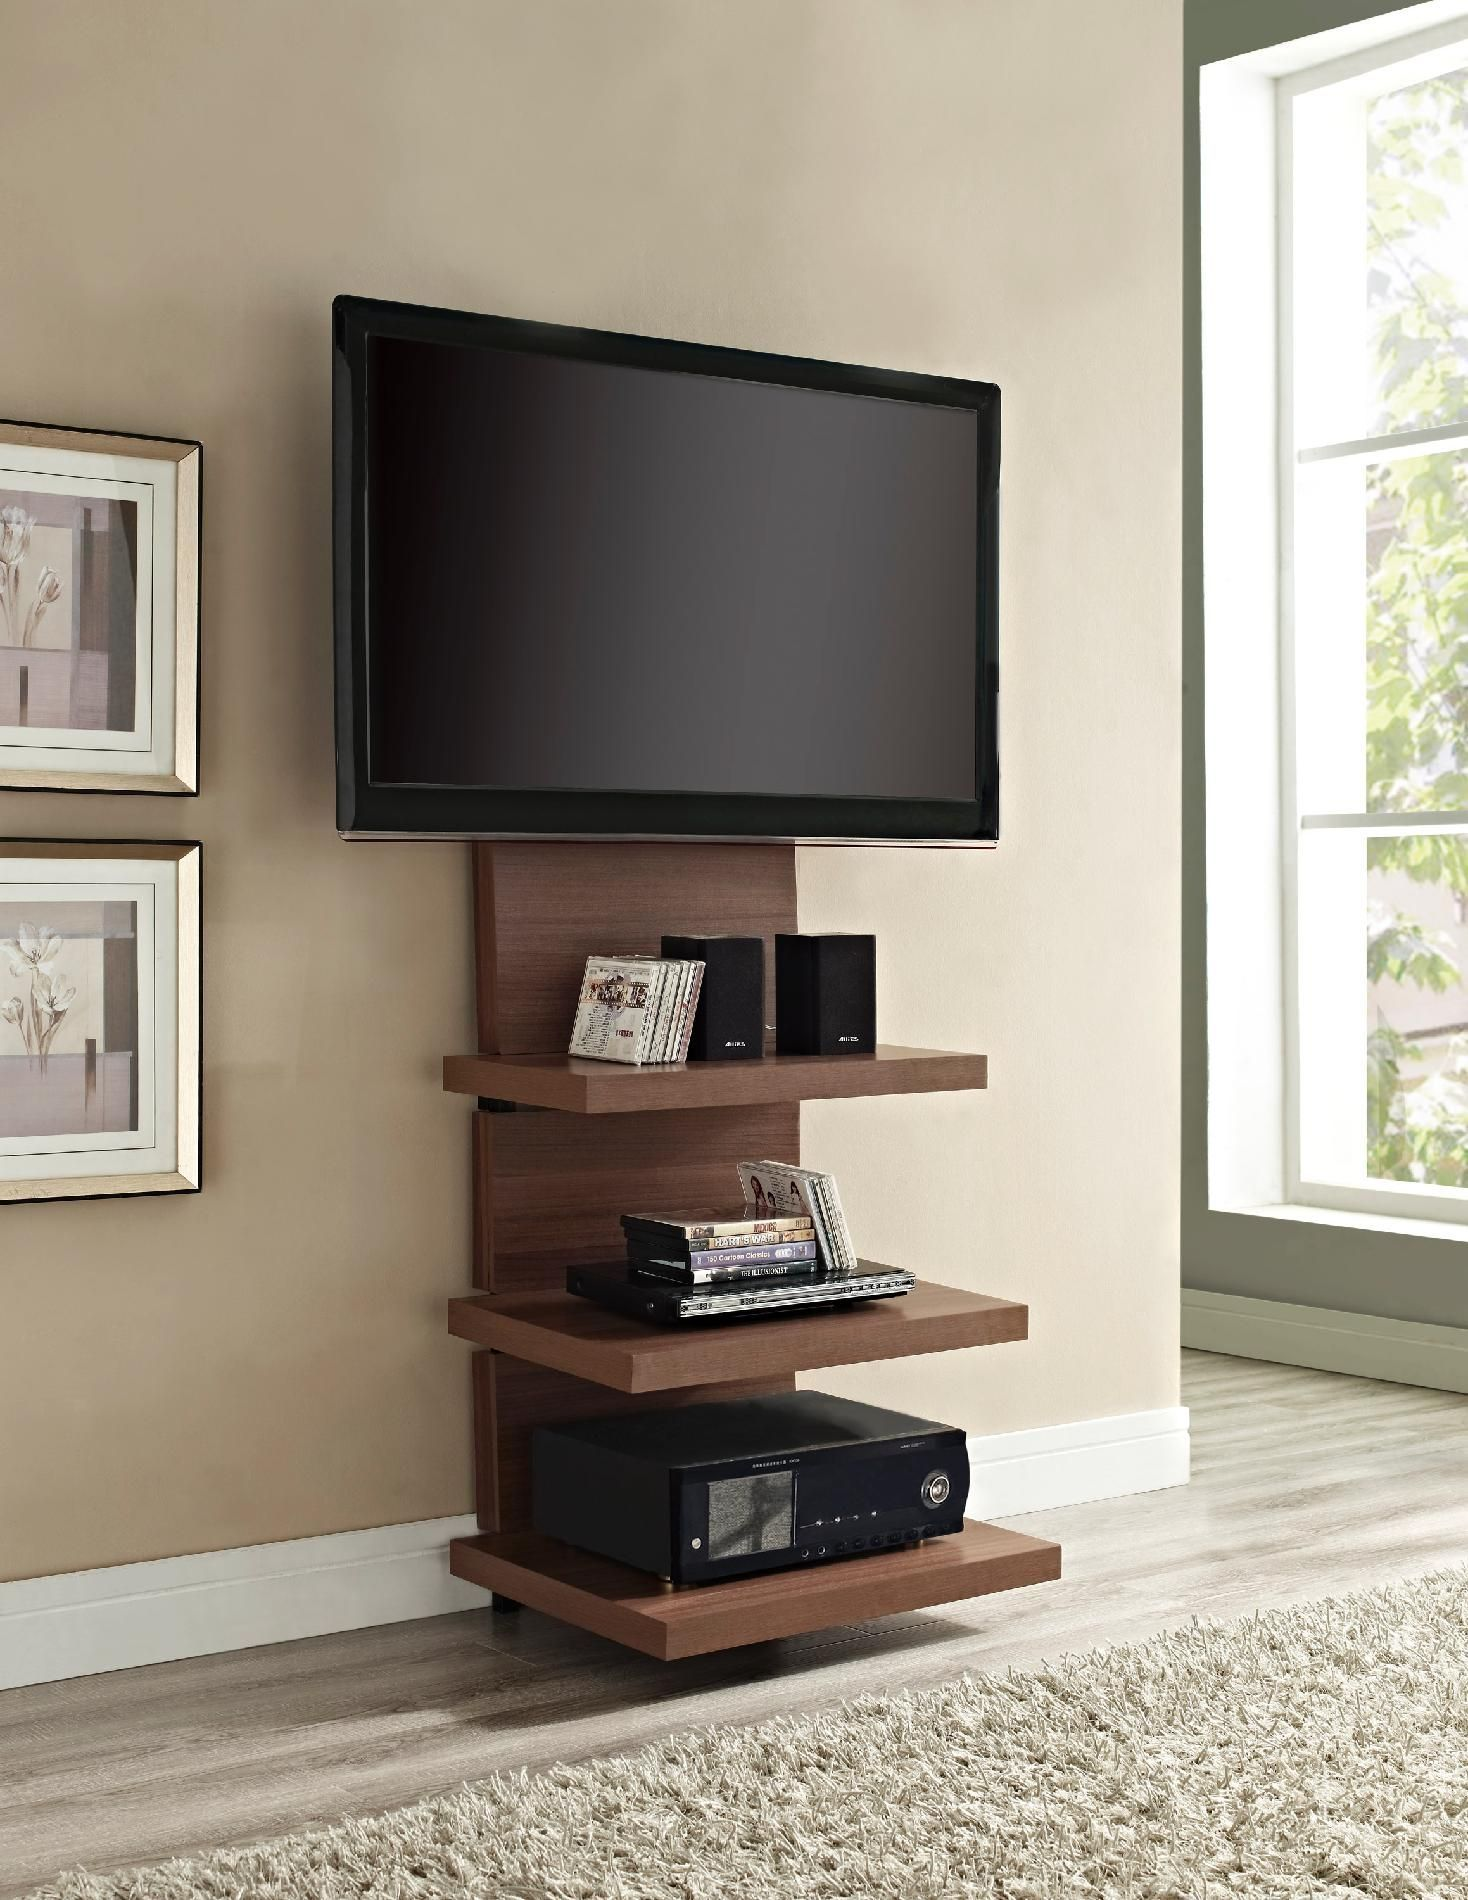 28 Amazing Diy Tv Stand Ideas That You Can Build Right Now Zebaru Modern Tv Wall Wall Mounted Tv Tv Wall